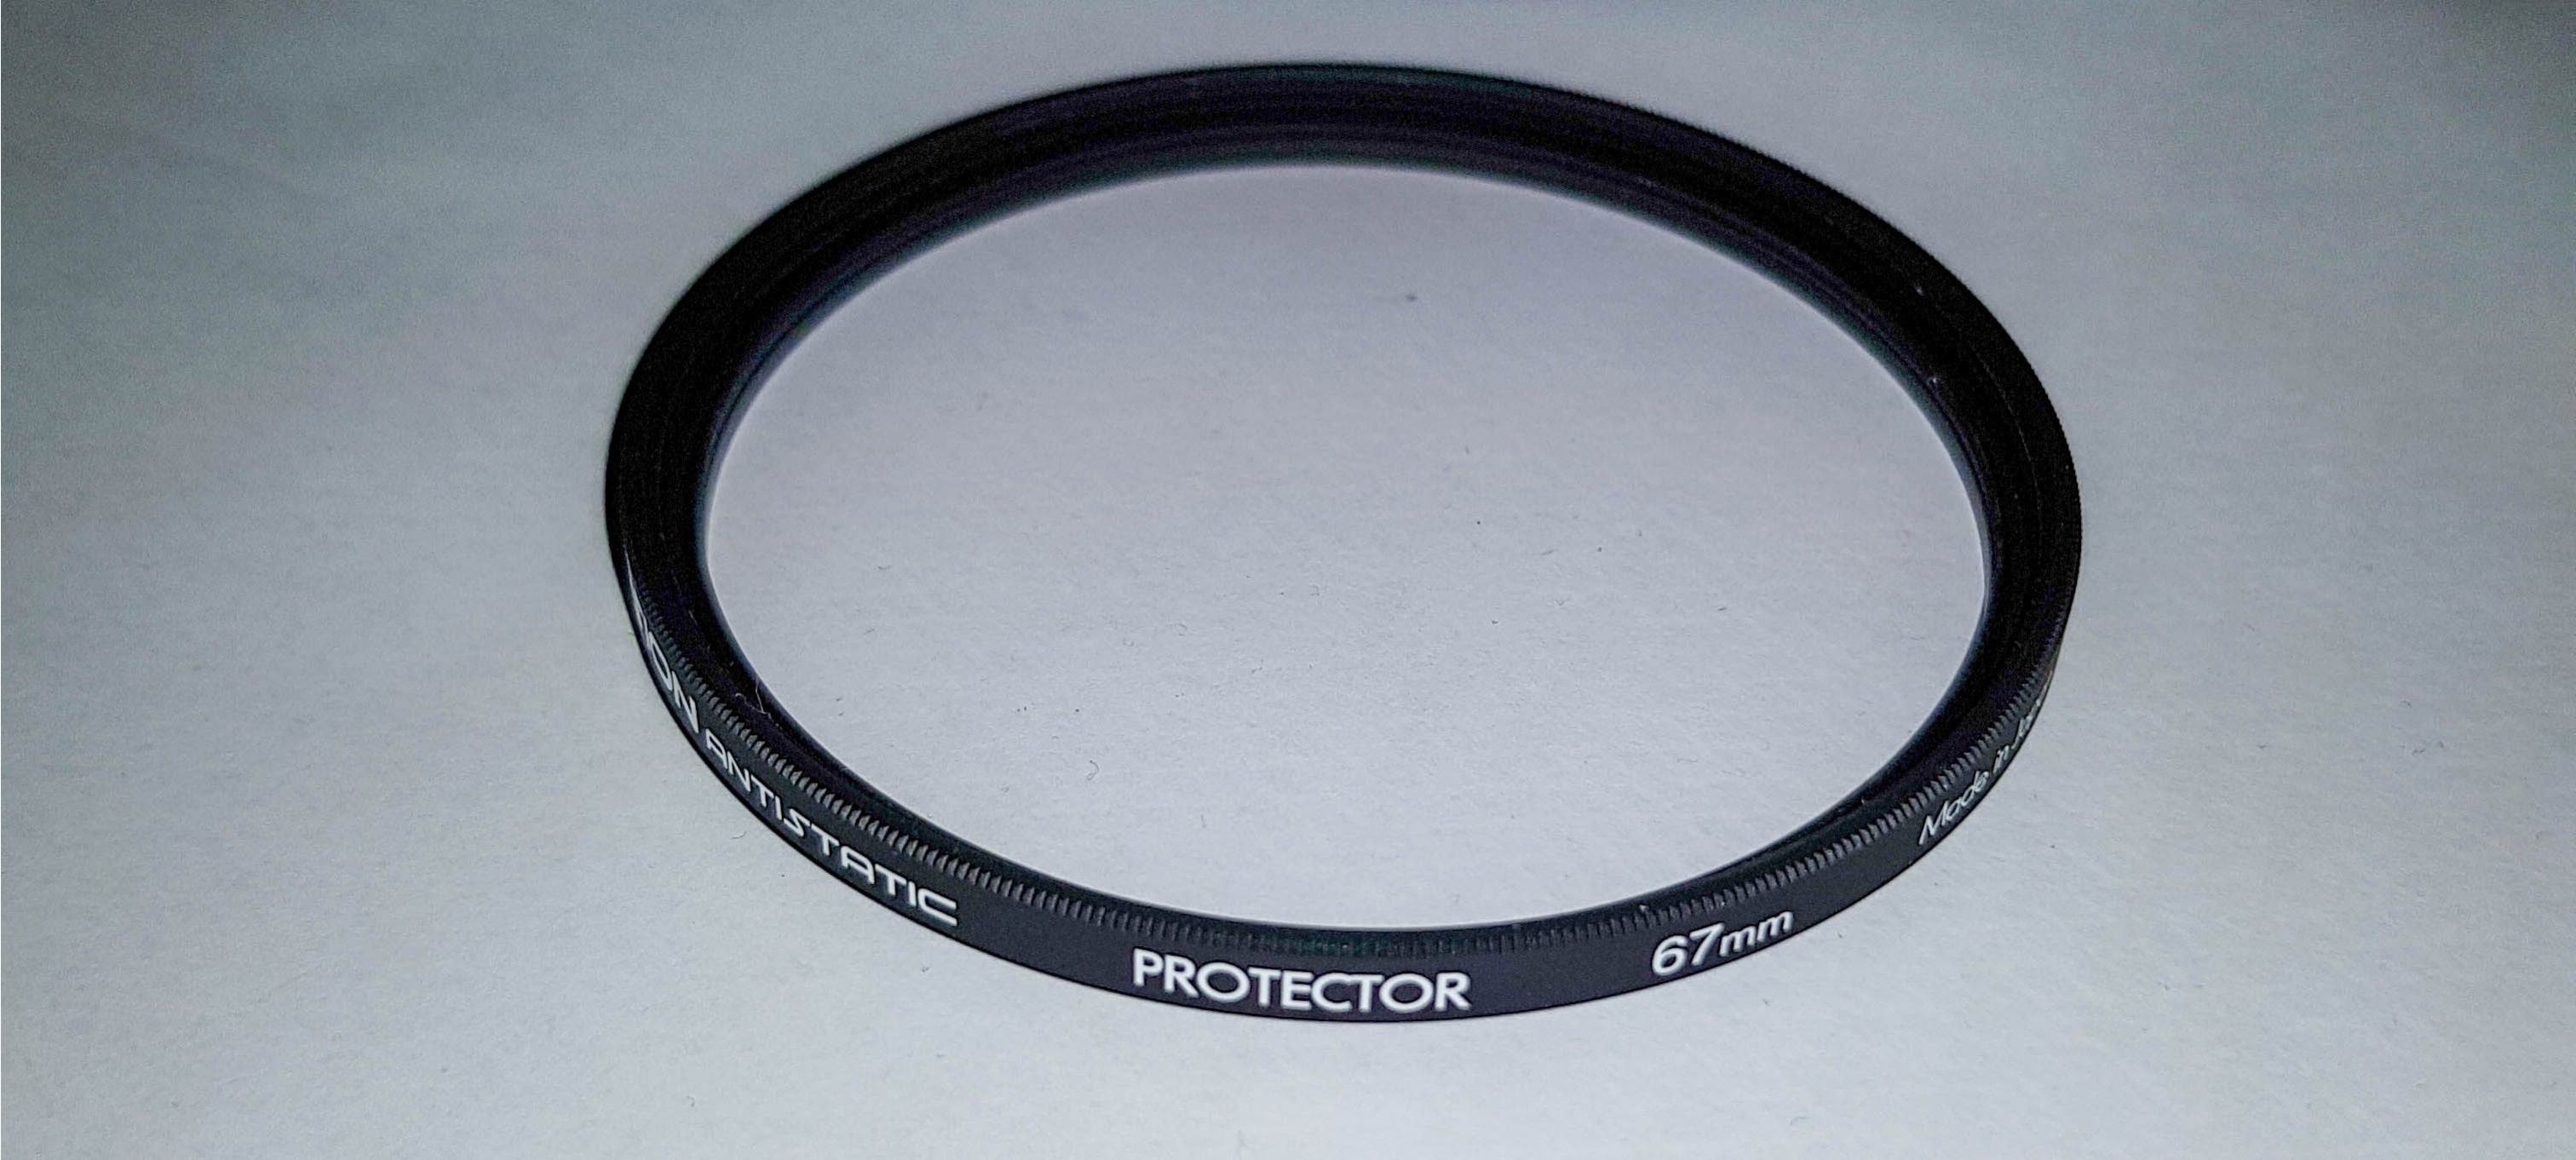 Fusion Protector 67 mm